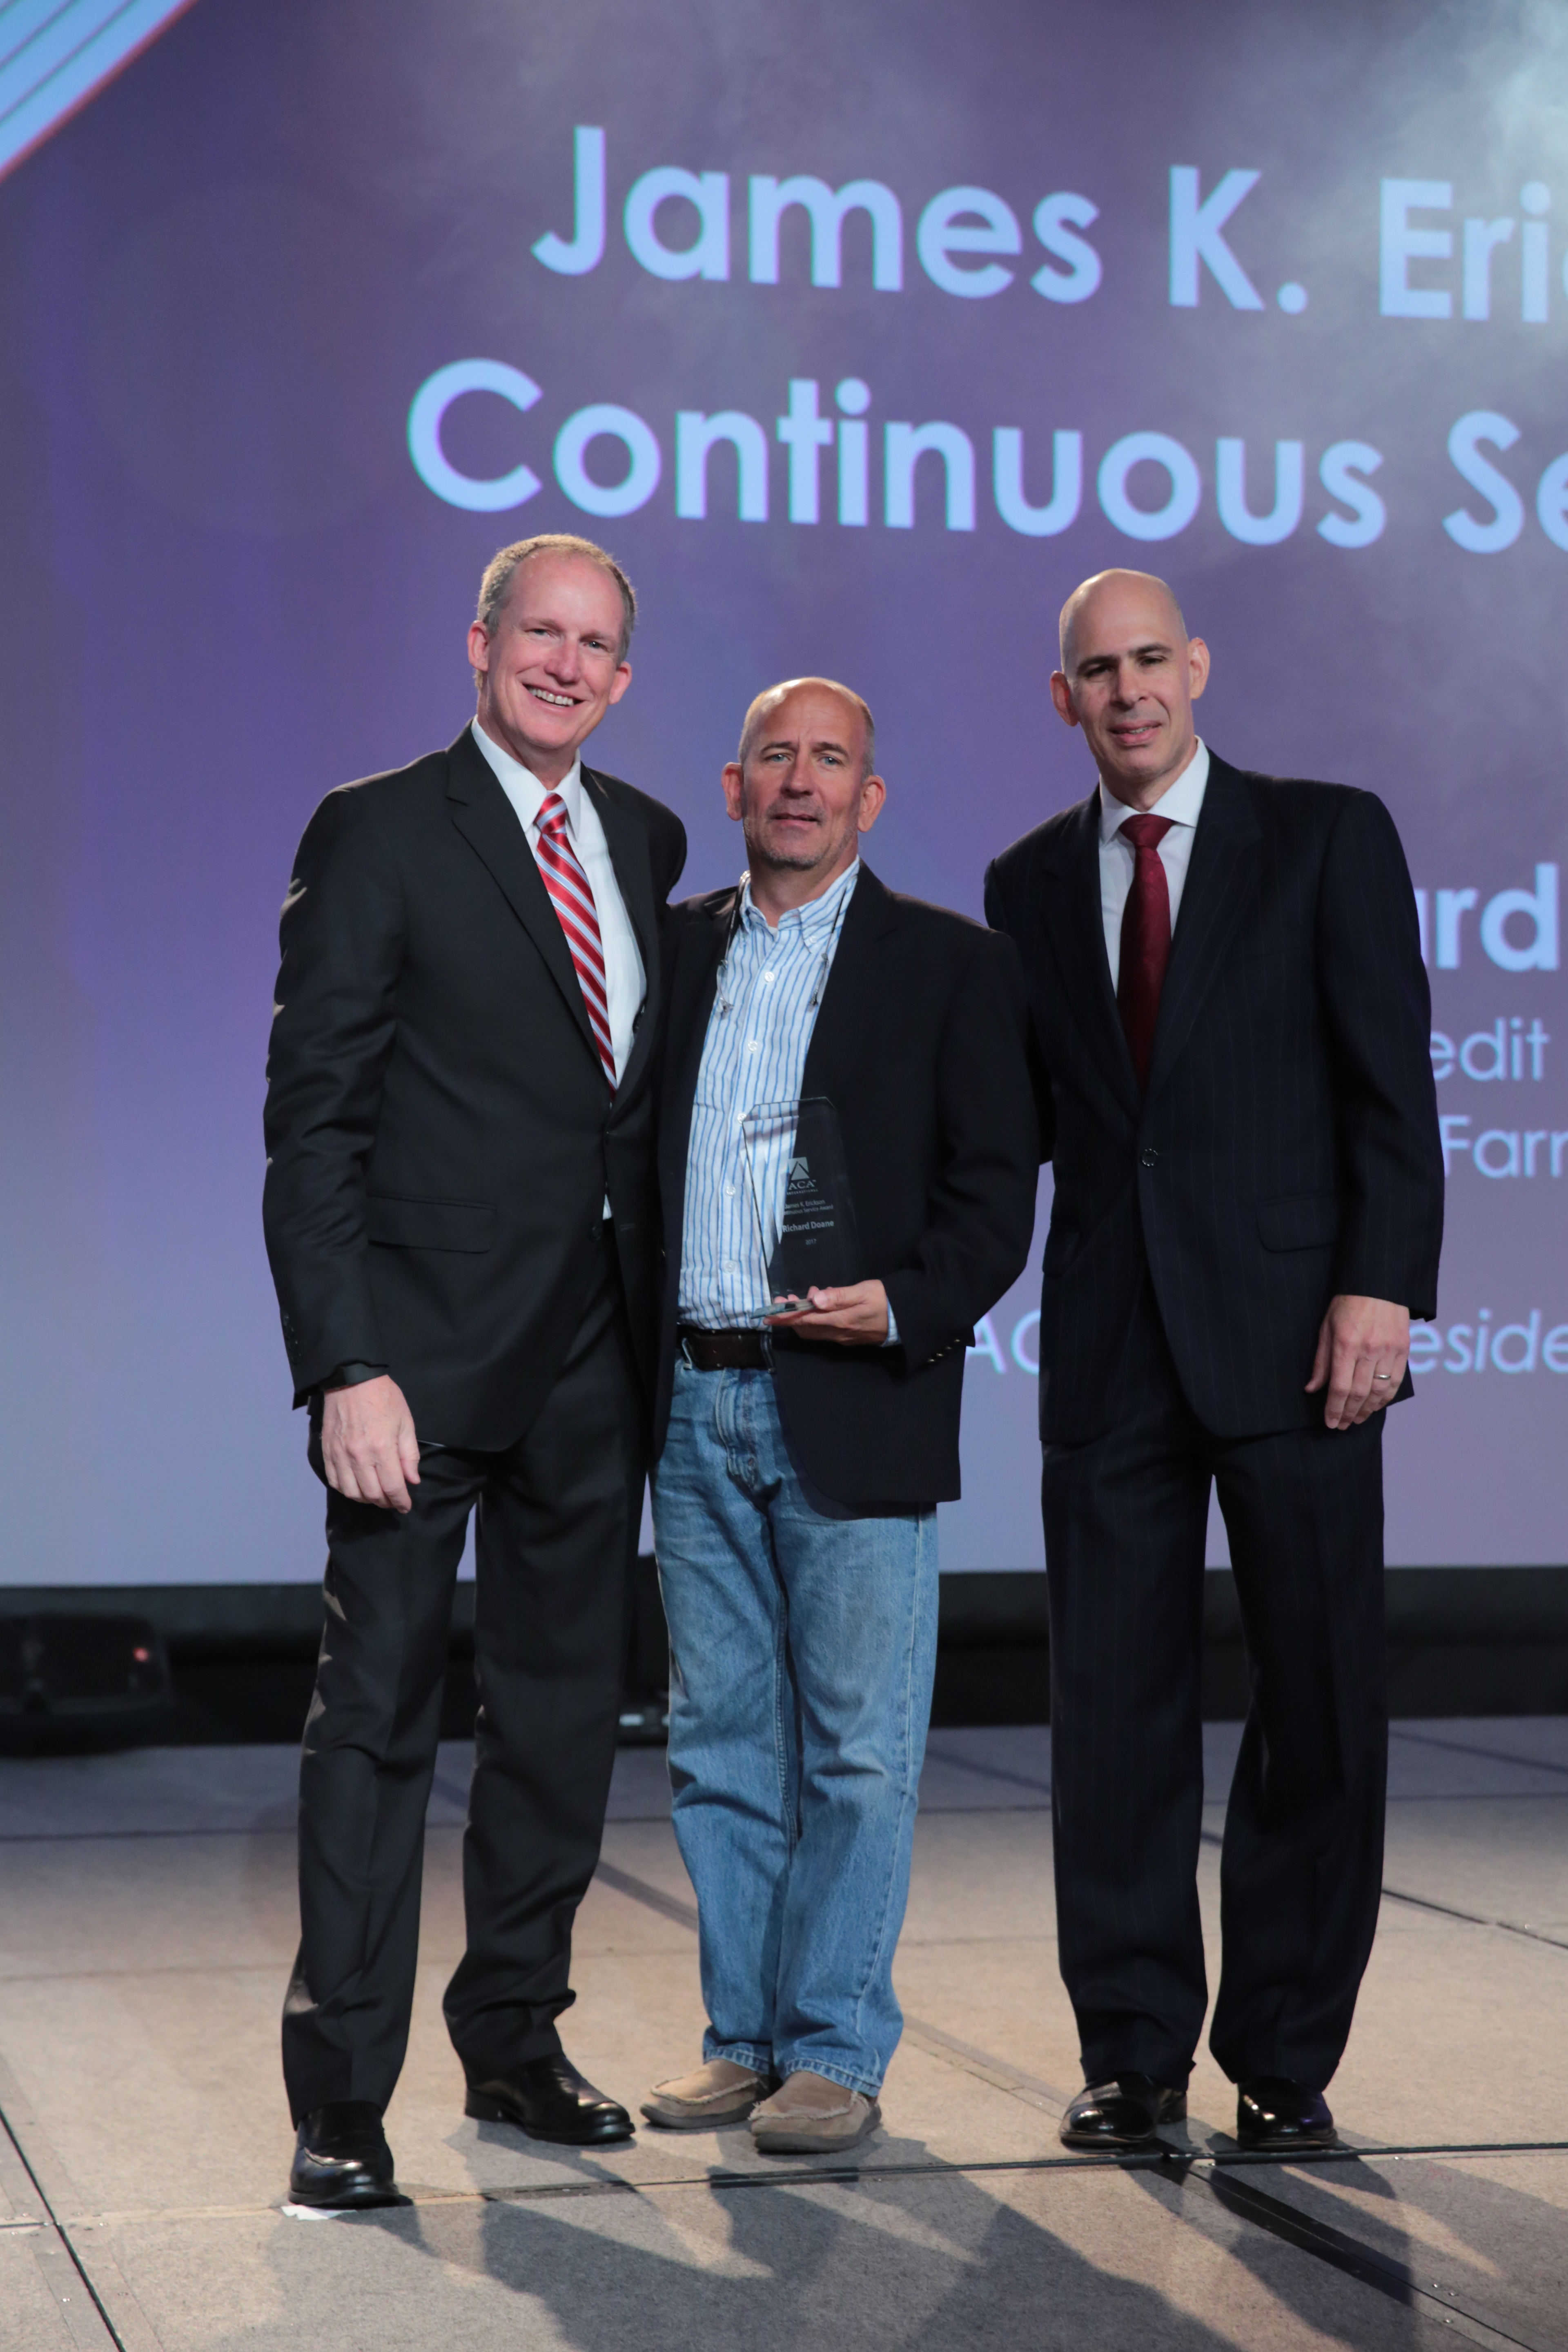 James K. Erickson Continuous Service Award